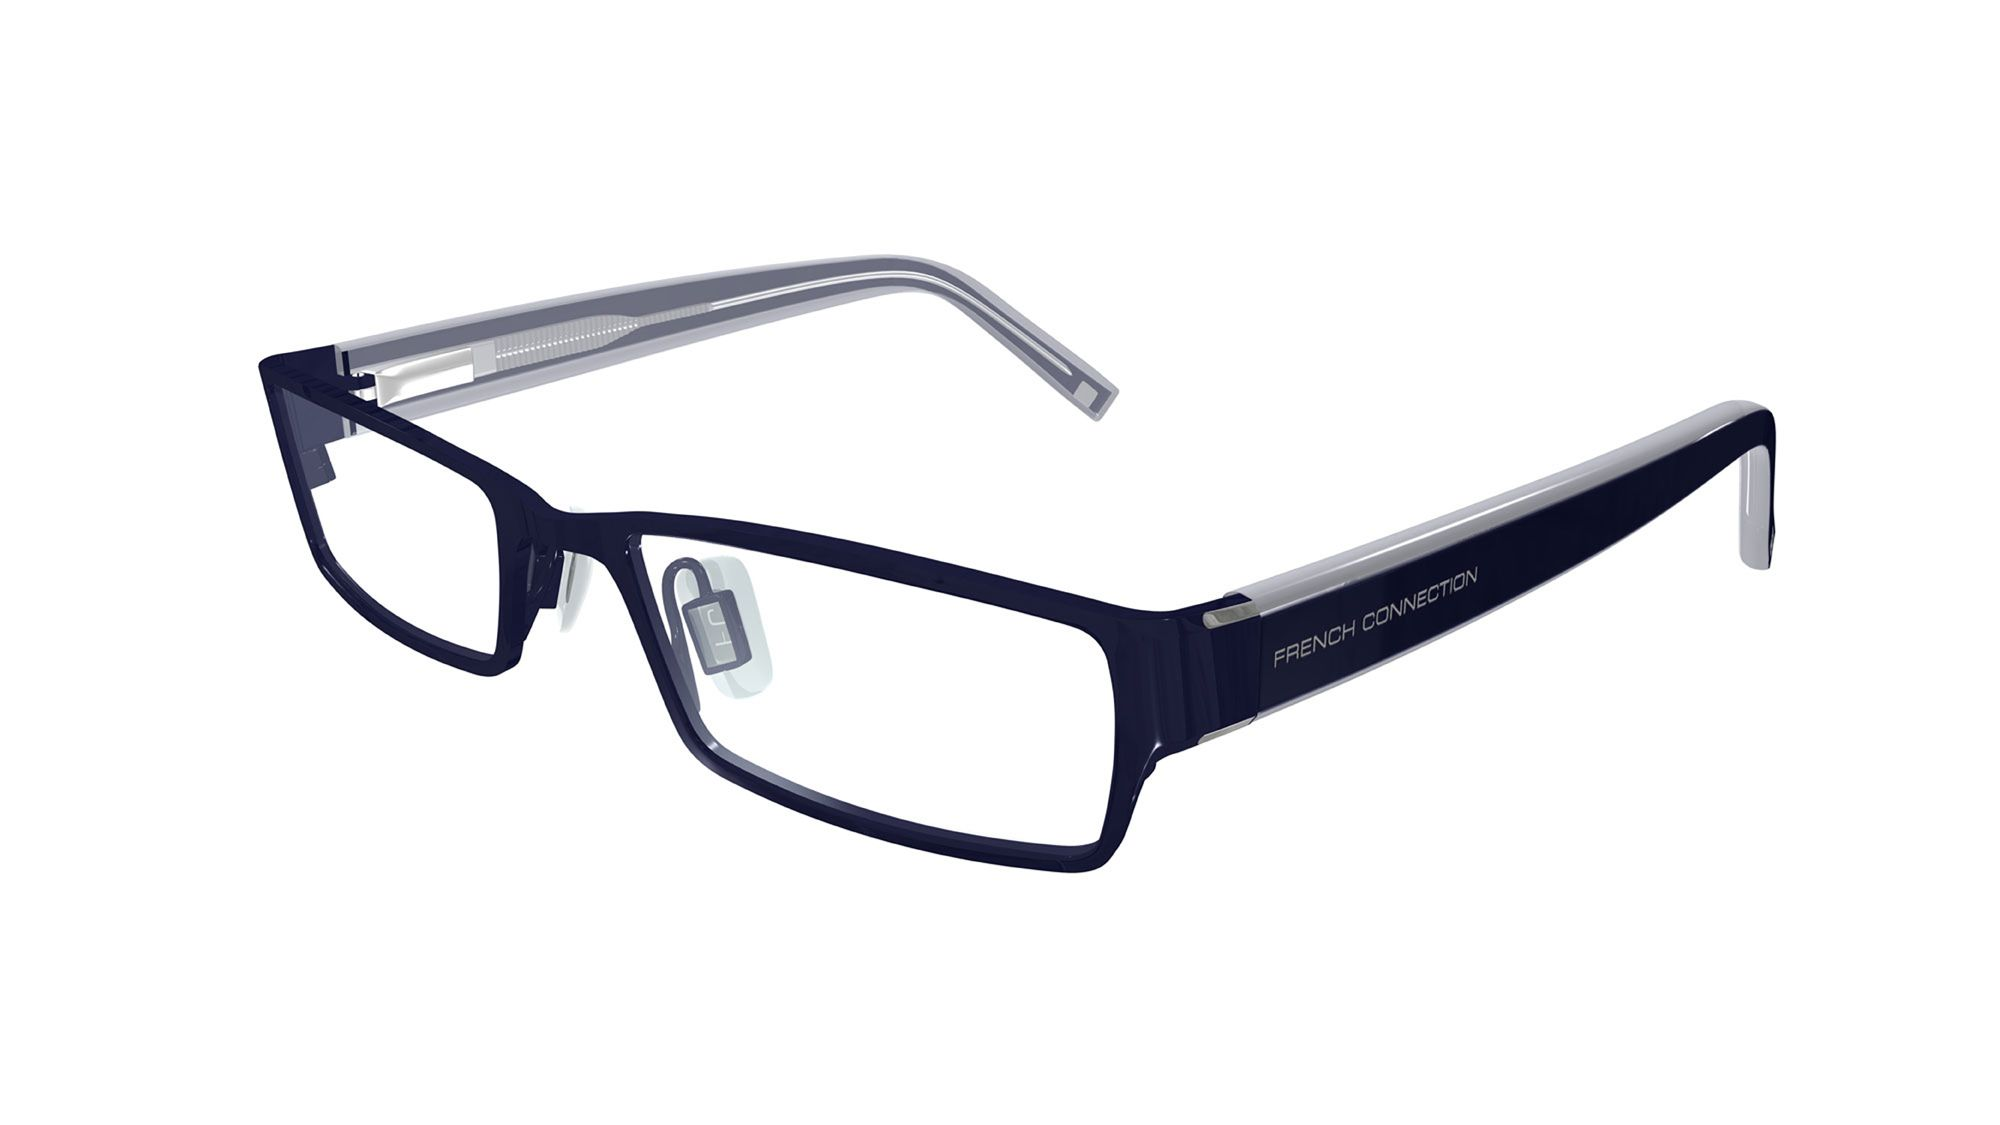 FC 79 Glasses by French Connection | Specsavers UK - i got these c ...